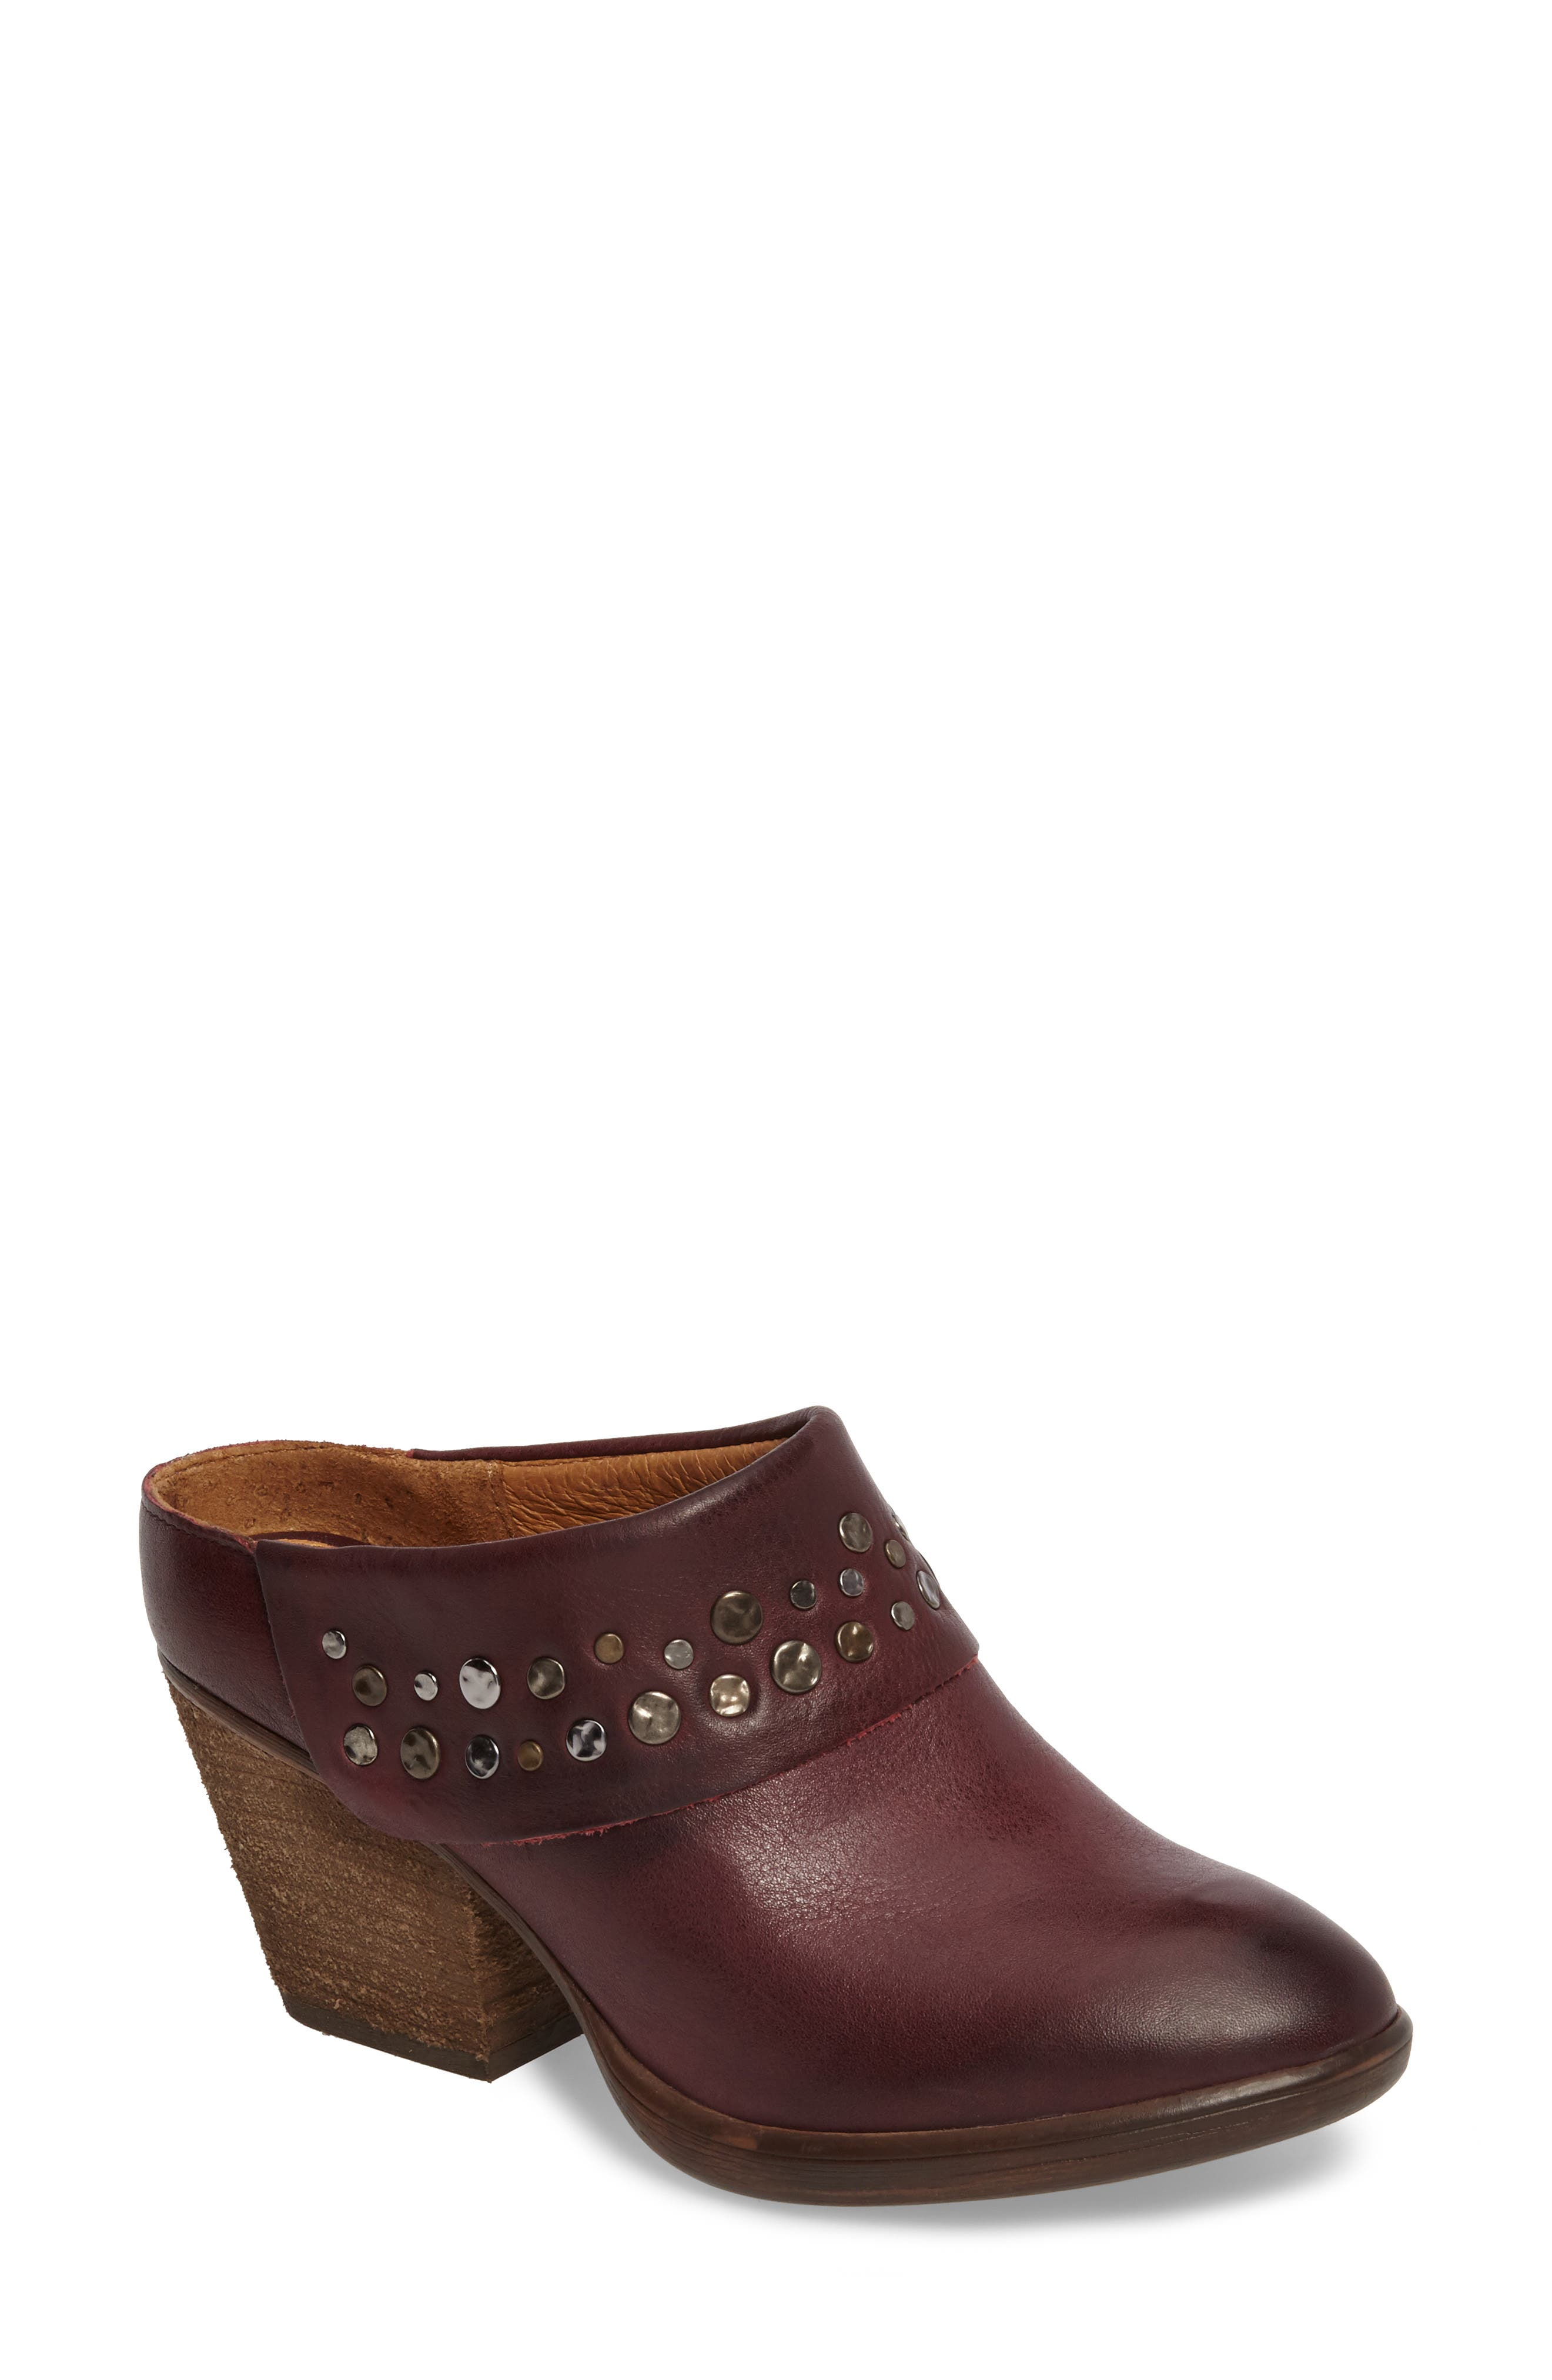 Gila Studded Mule,                             Main thumbnail 1, color,                             Marsala Red Leather